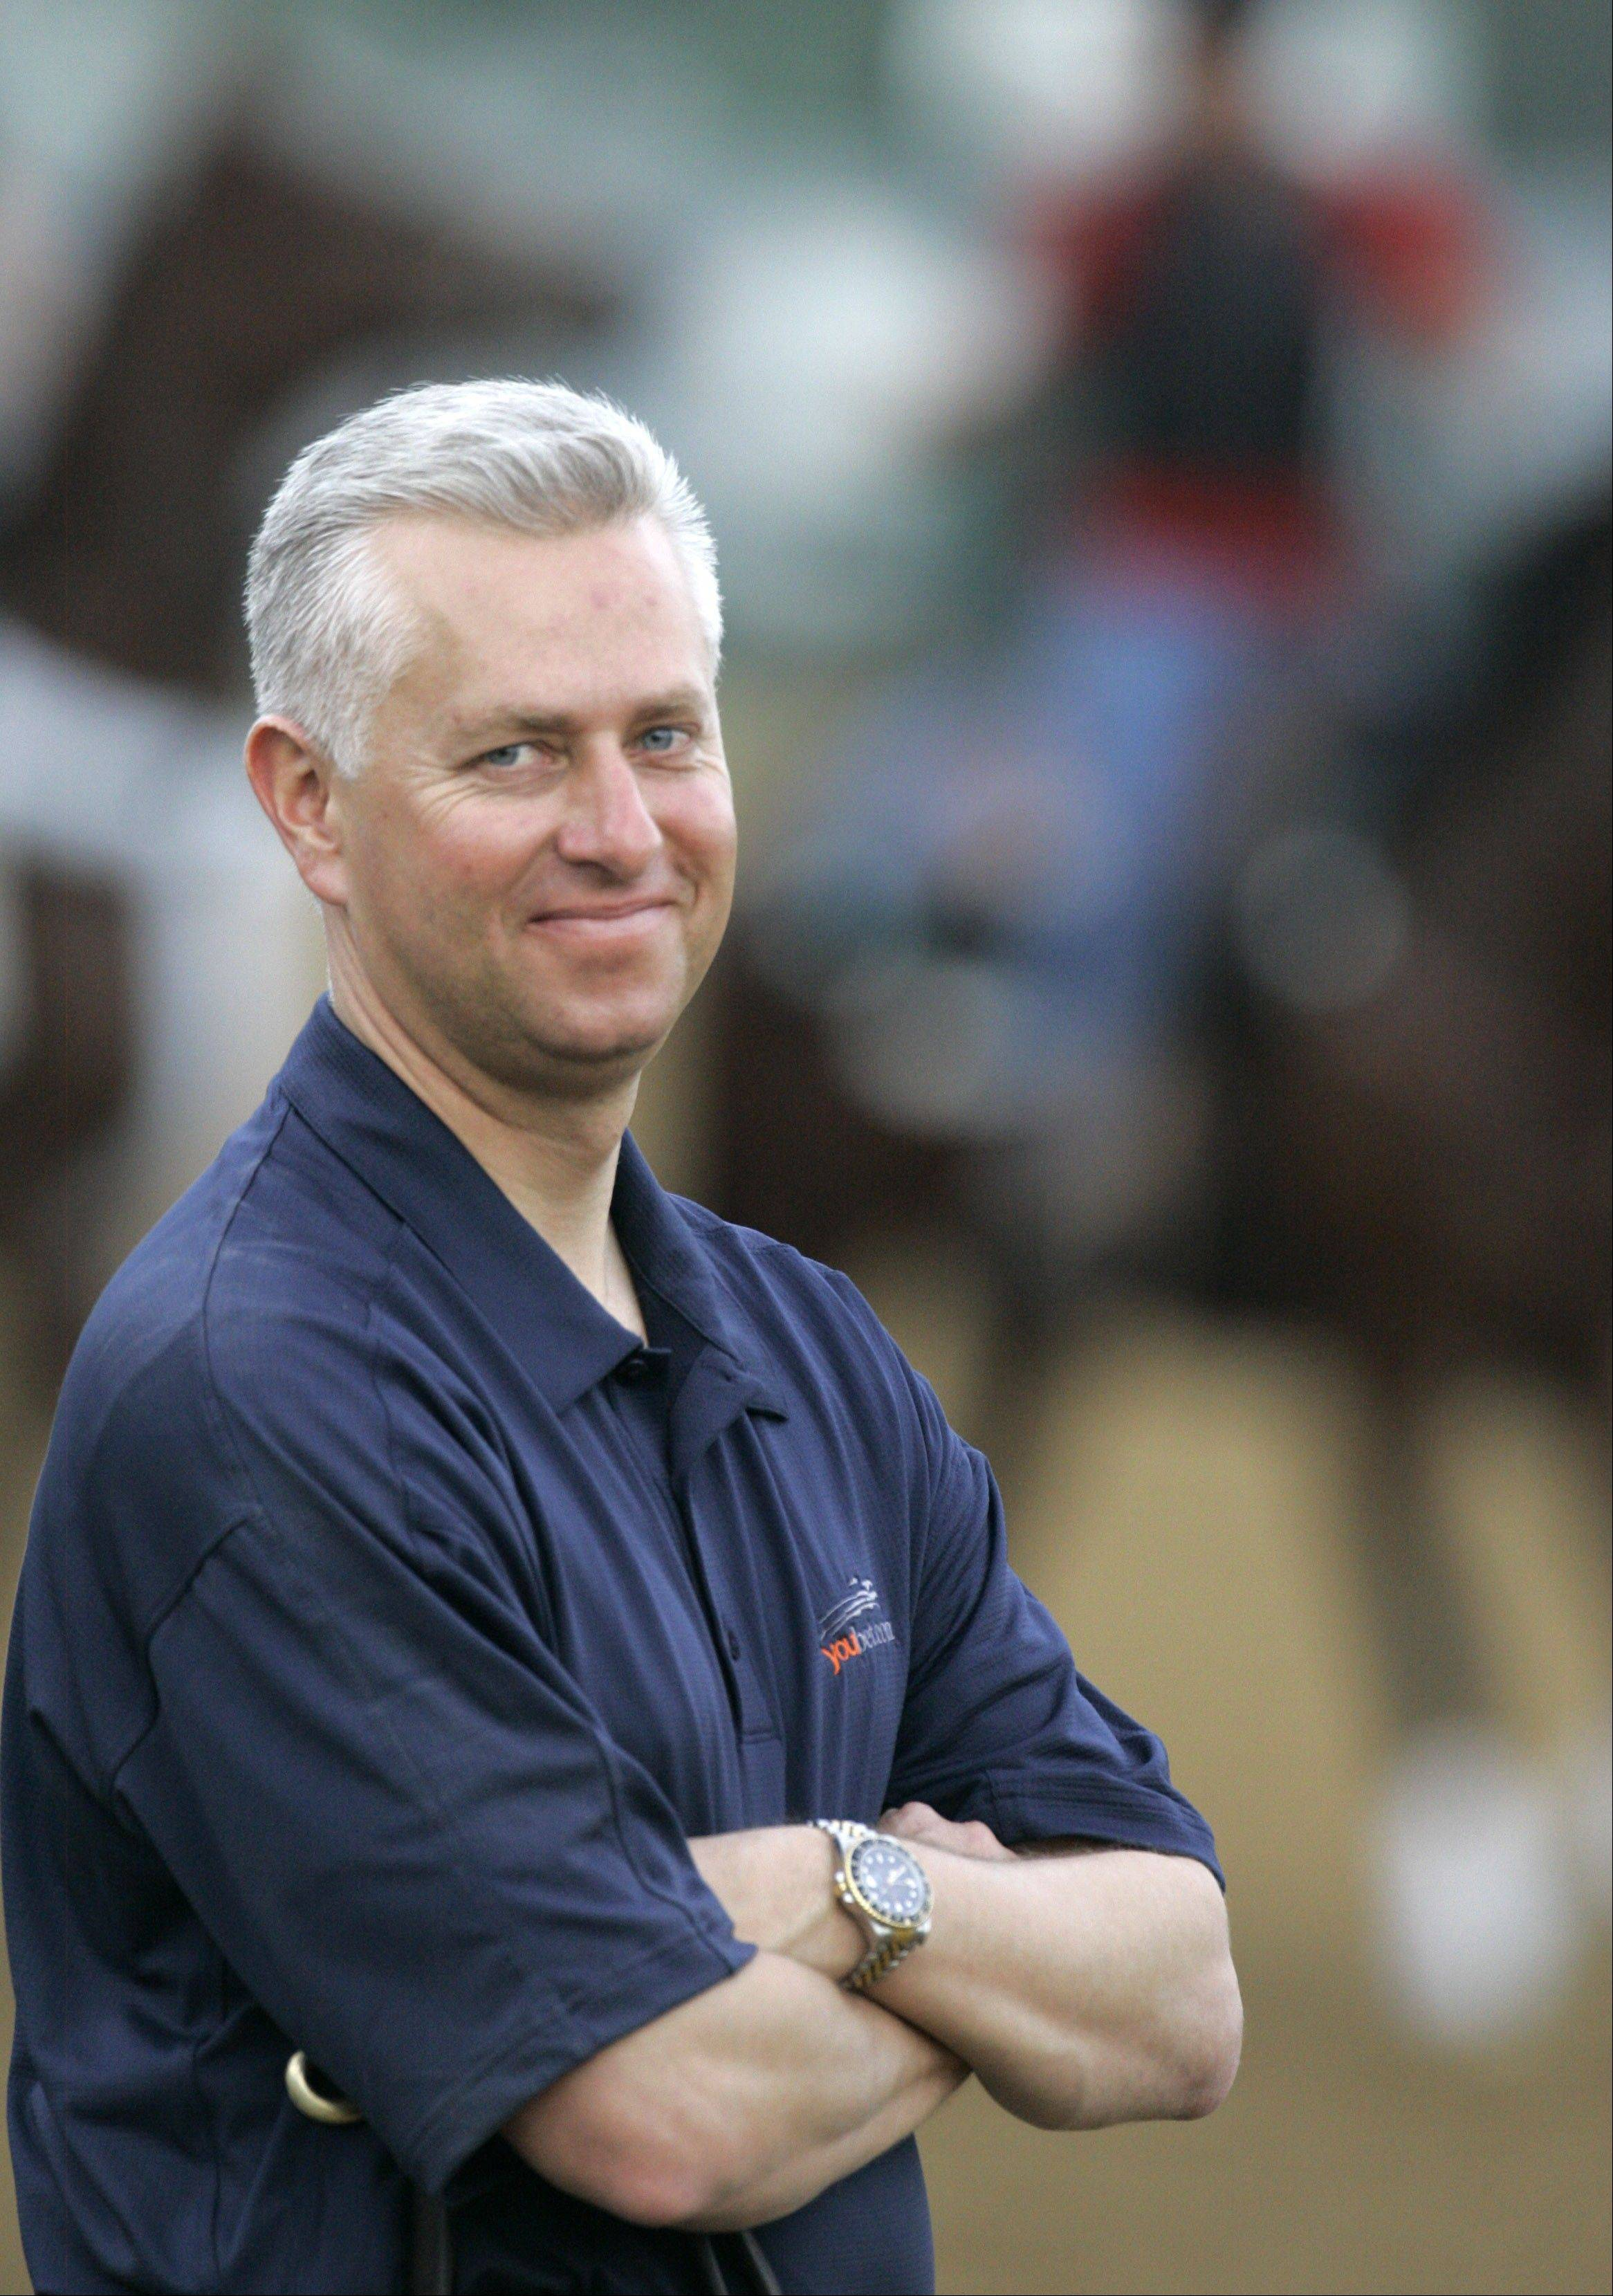 Trainer Todd Pletcher has won the Illinois Derby four times in the last 11 years, and he's in the hunt for a fifth crown on Saturday as part of a stellar 14-horse field in the Kentucky Derby prep race at Hawthorne Racecourse.